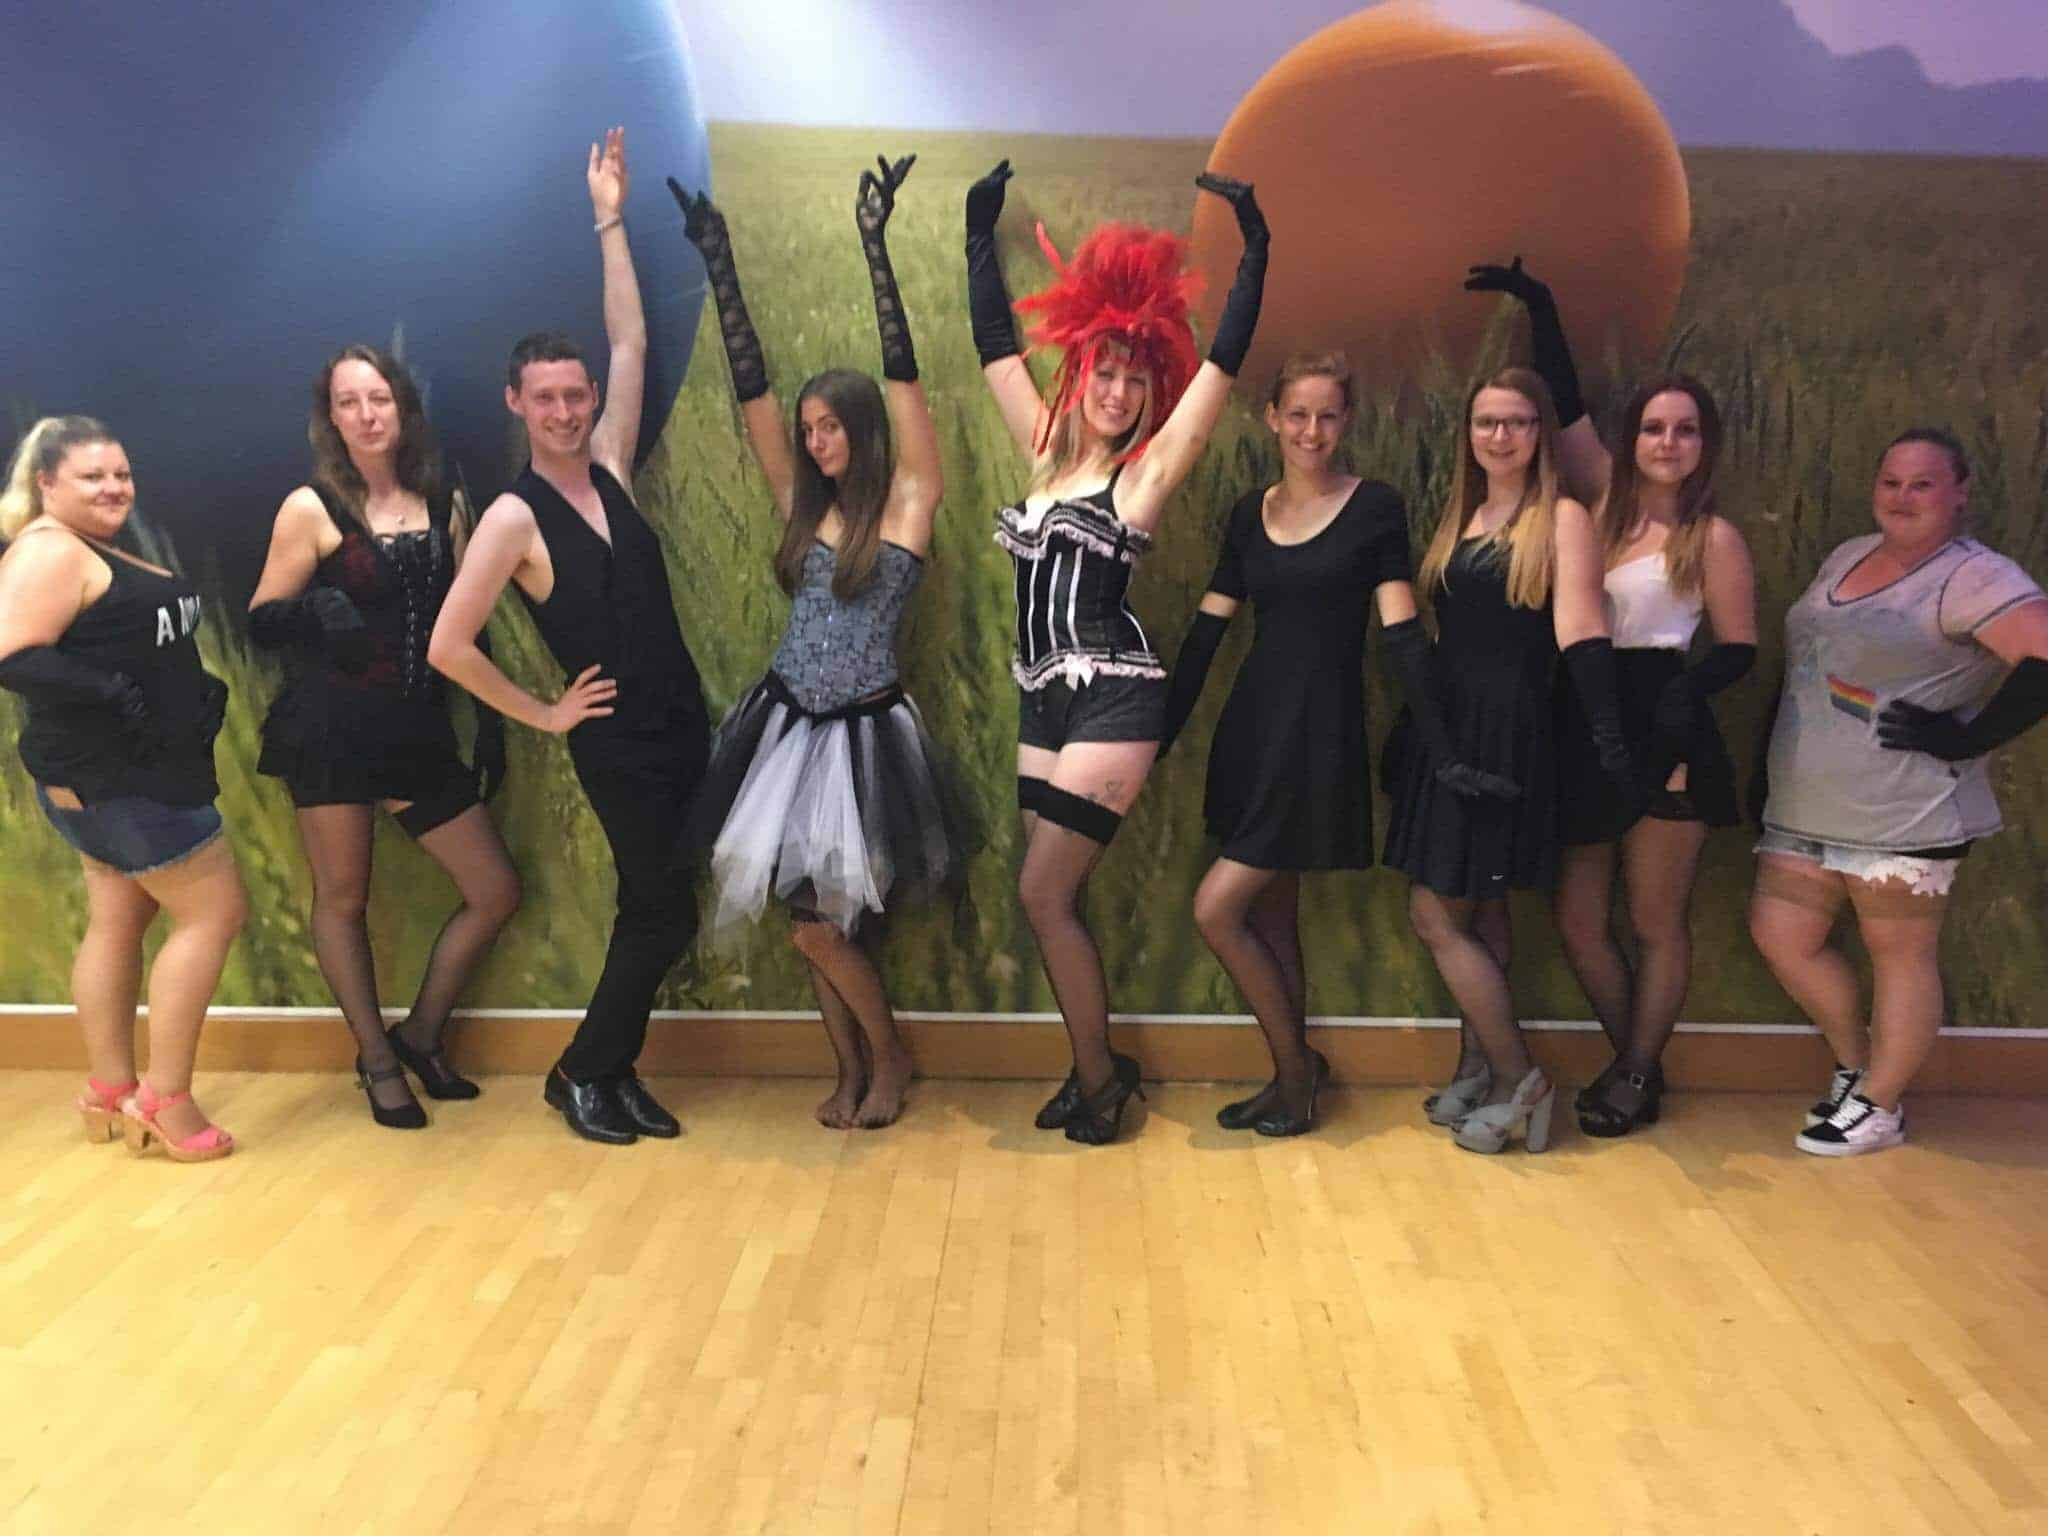 Hen party burlesque parties